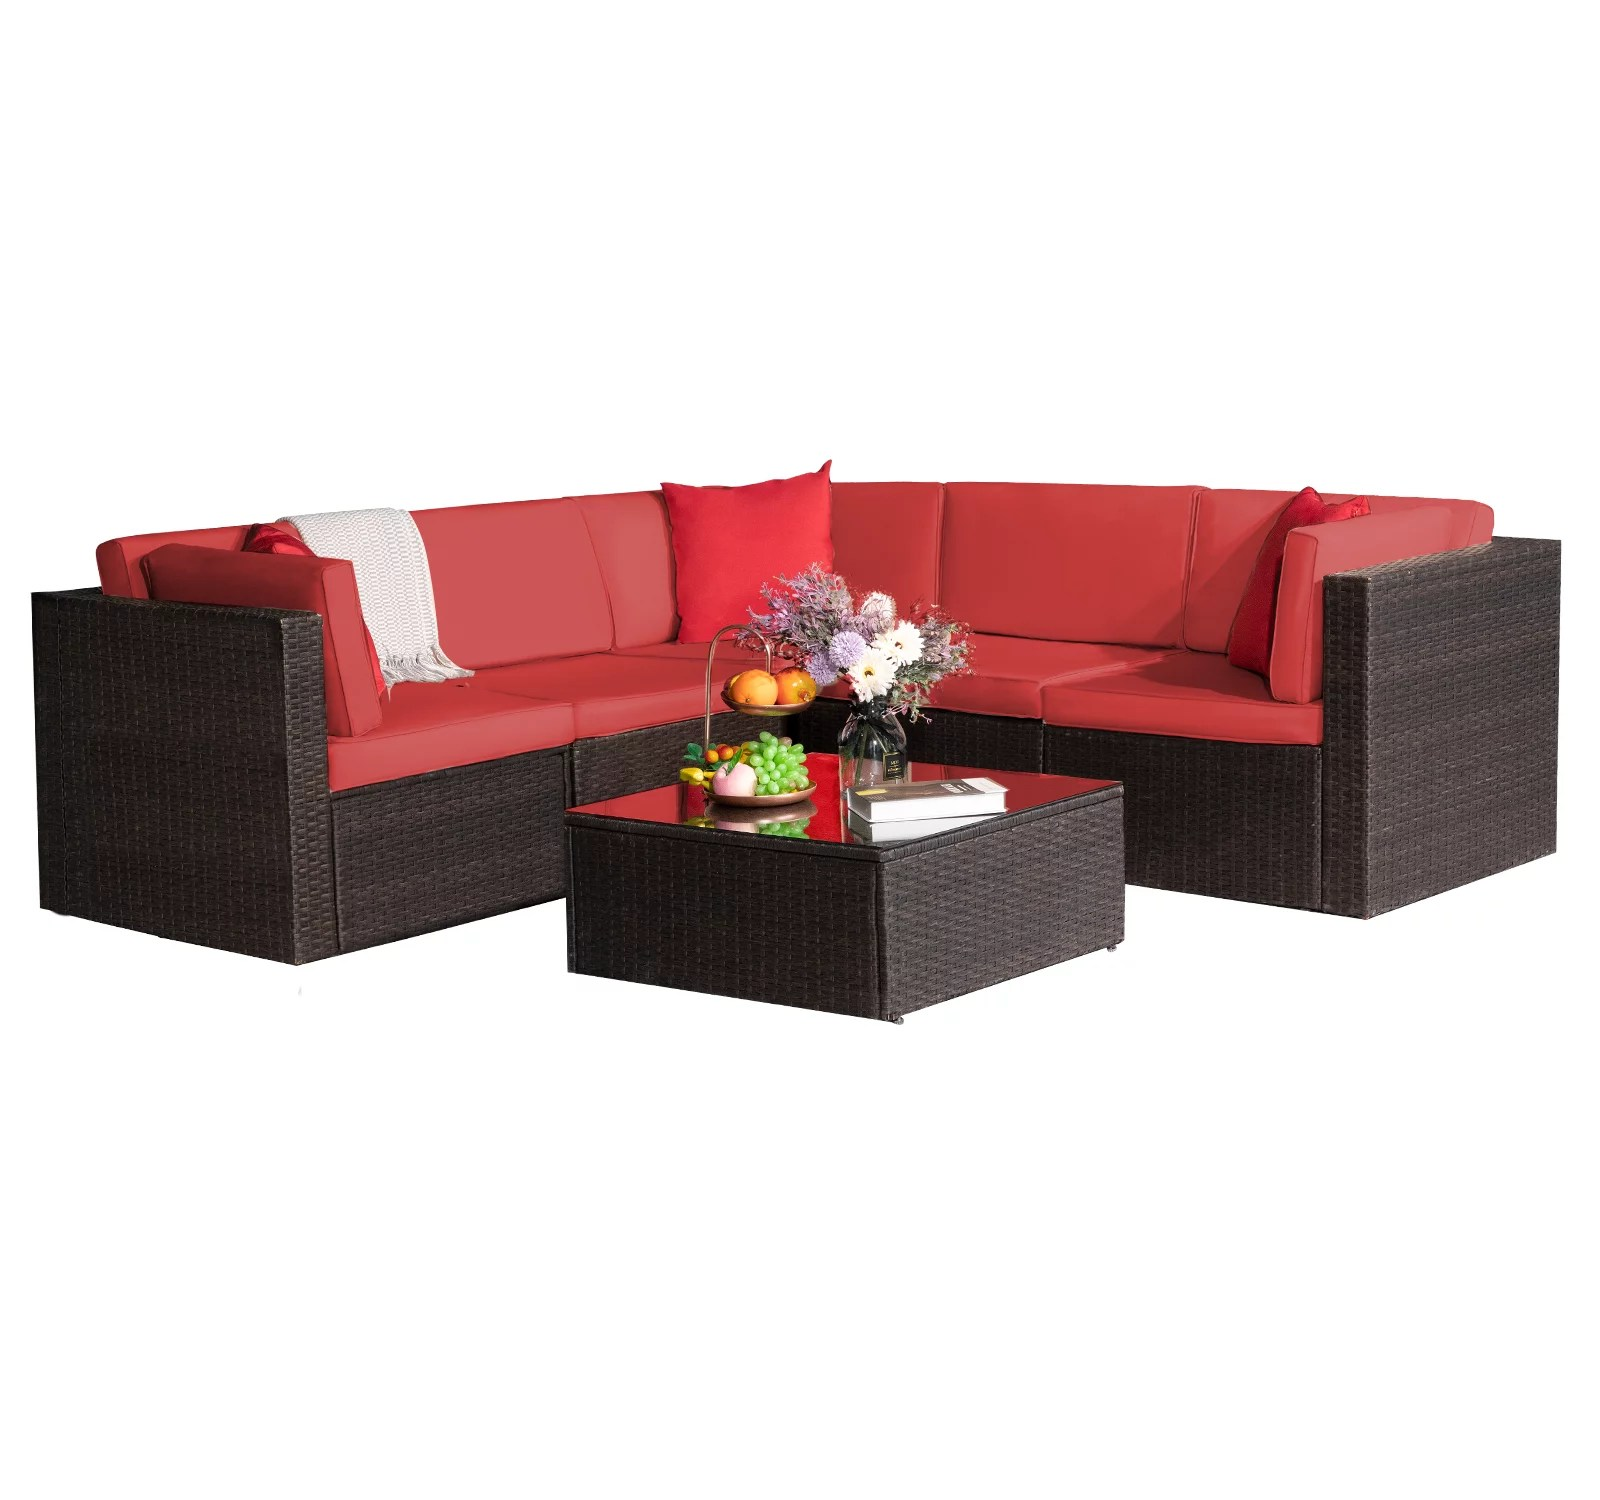 walnew 6 pieces outdoor furniture patio sectional sofa sets all weather pe rattan manual wicker conversation set with washable cushions and glass